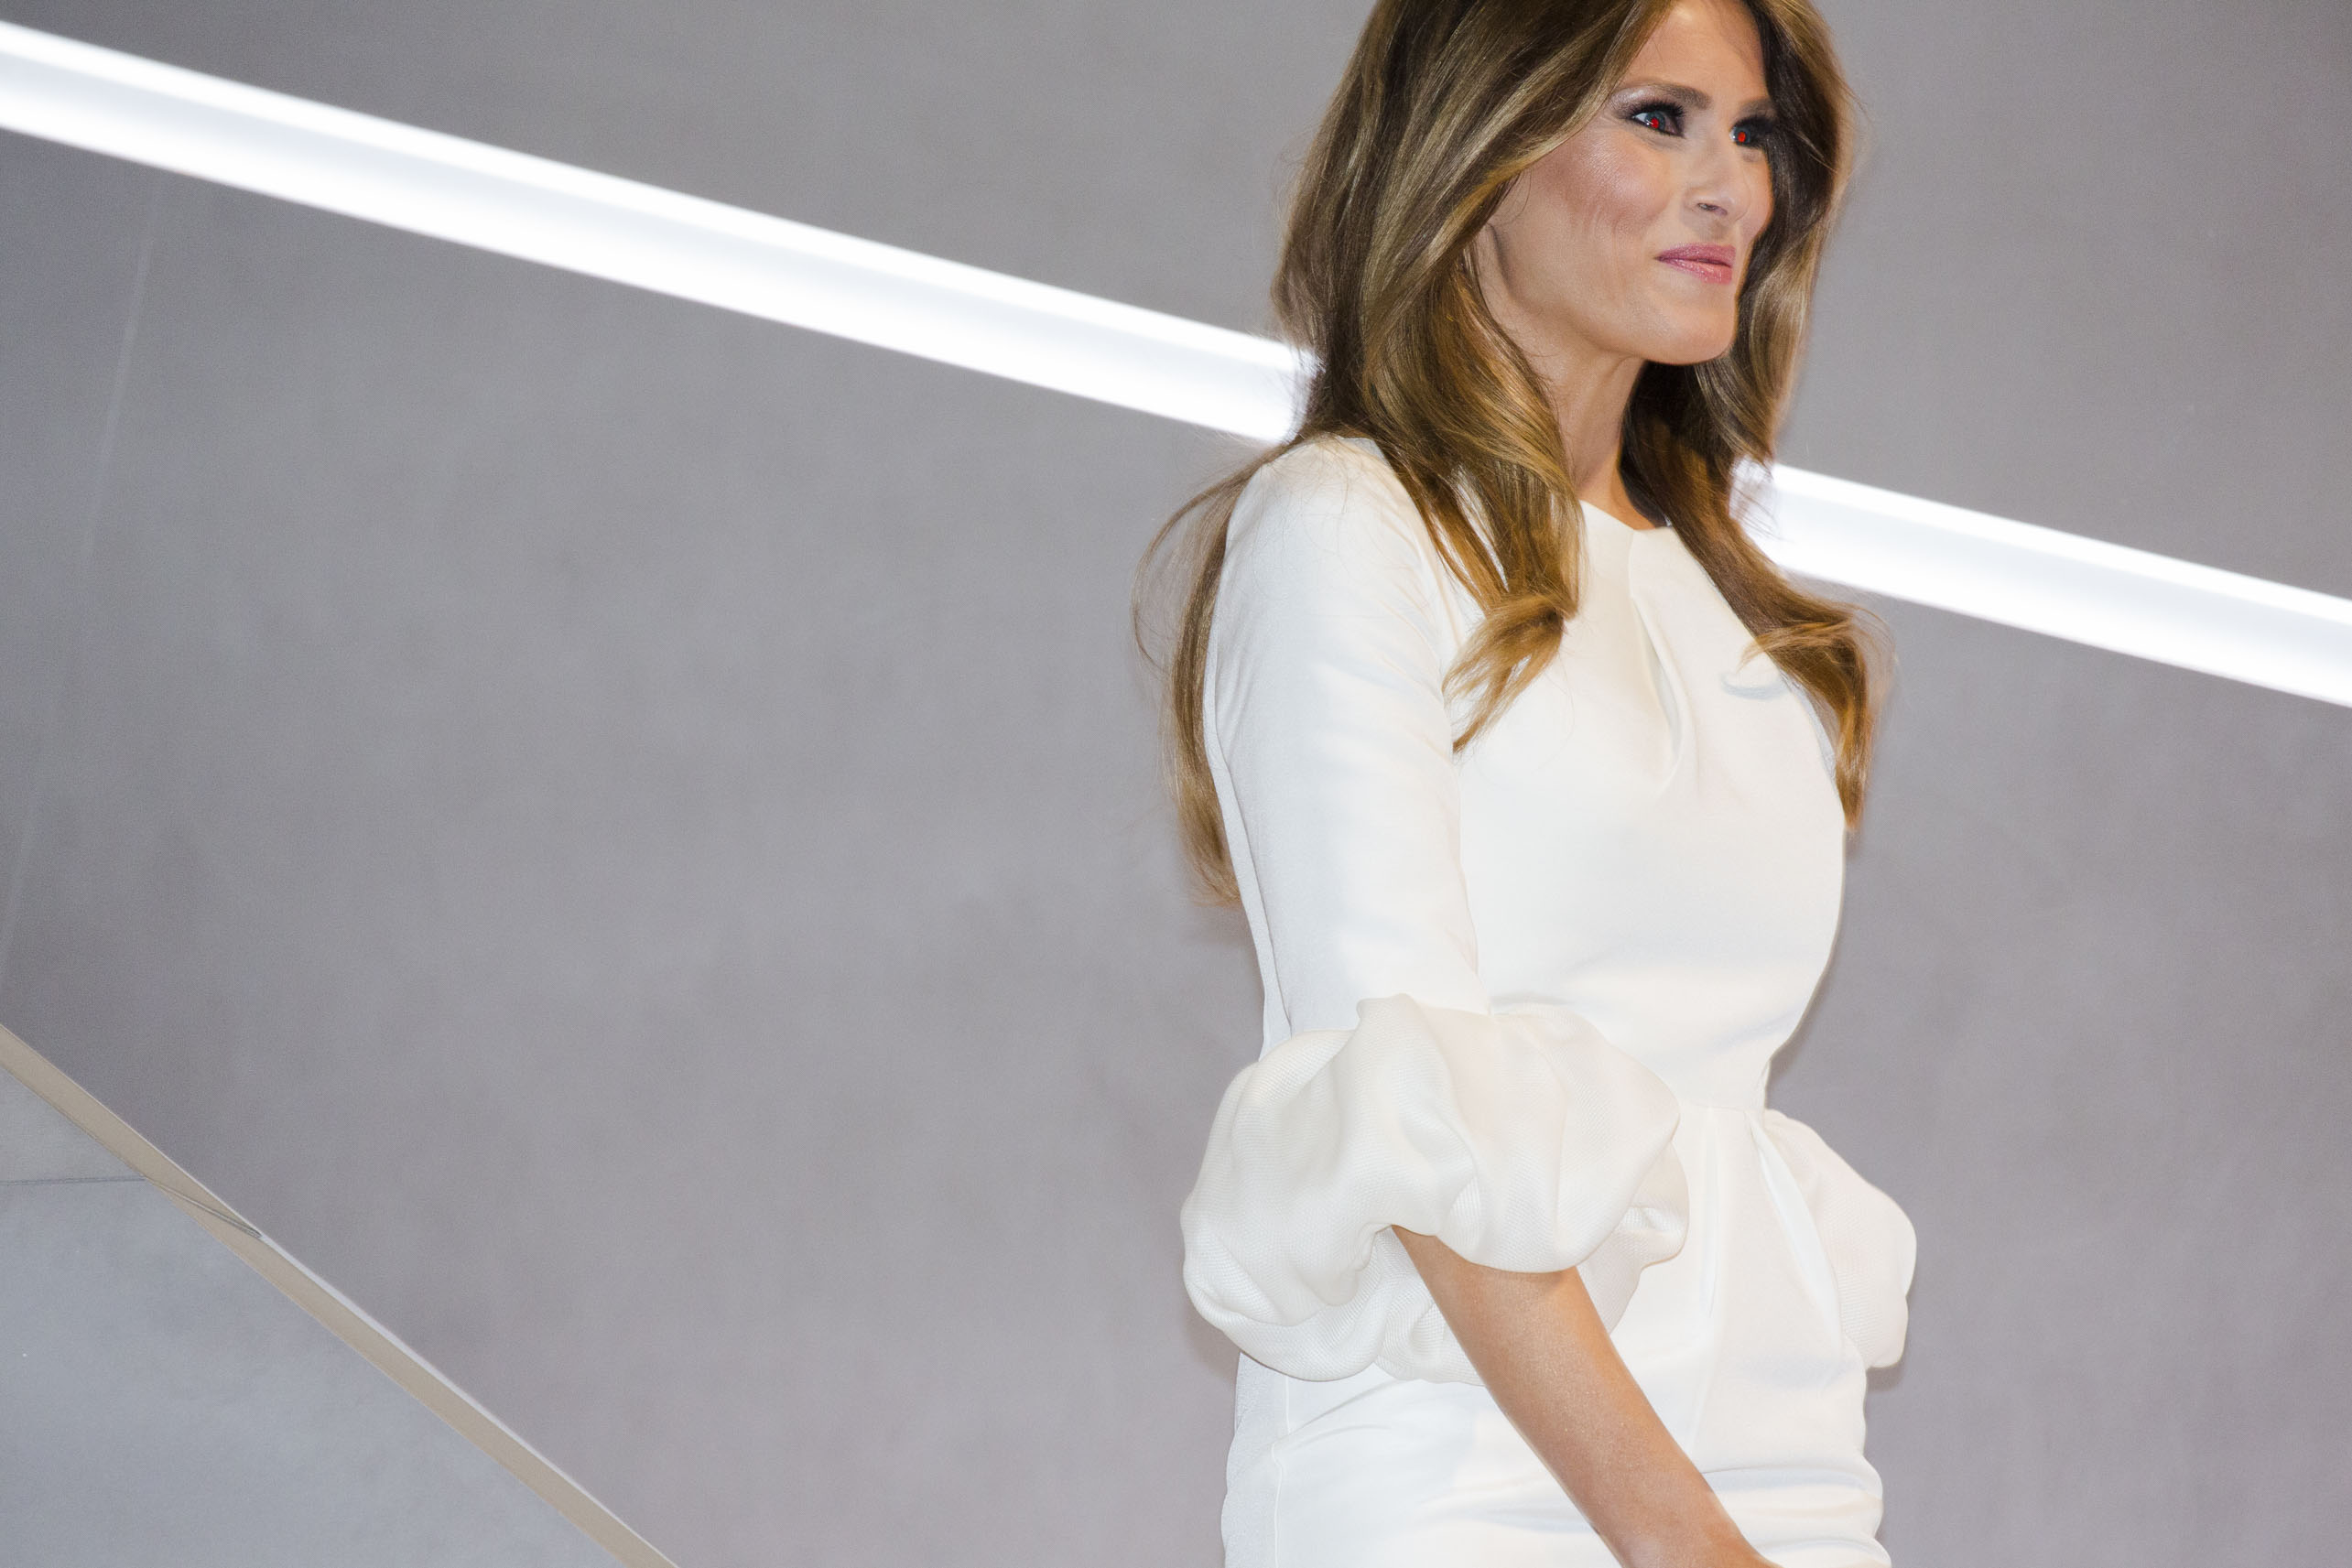 Melania Trump at the 2016 Republican National Convention on Monday, July 18, 2016, in Cleveland.